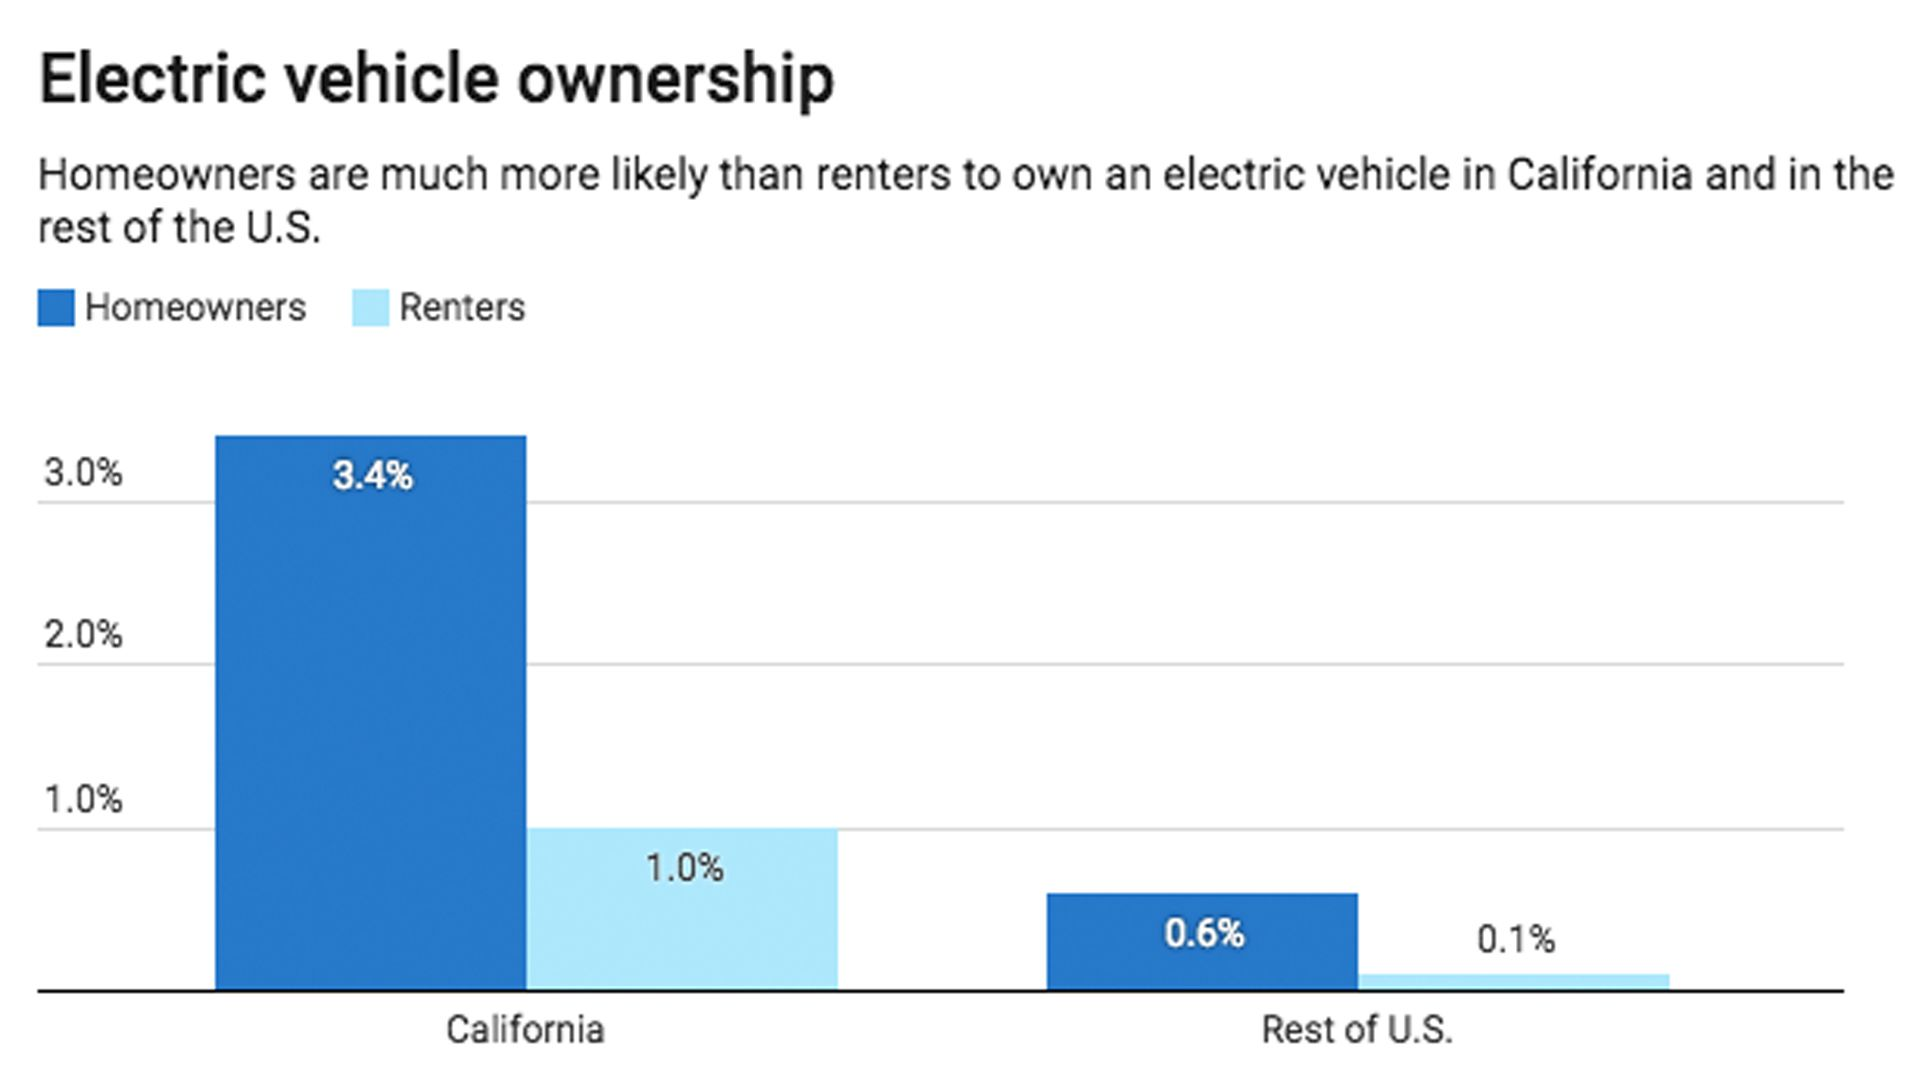 Chart showing electric vehicle ownership for homeowners compared to renters